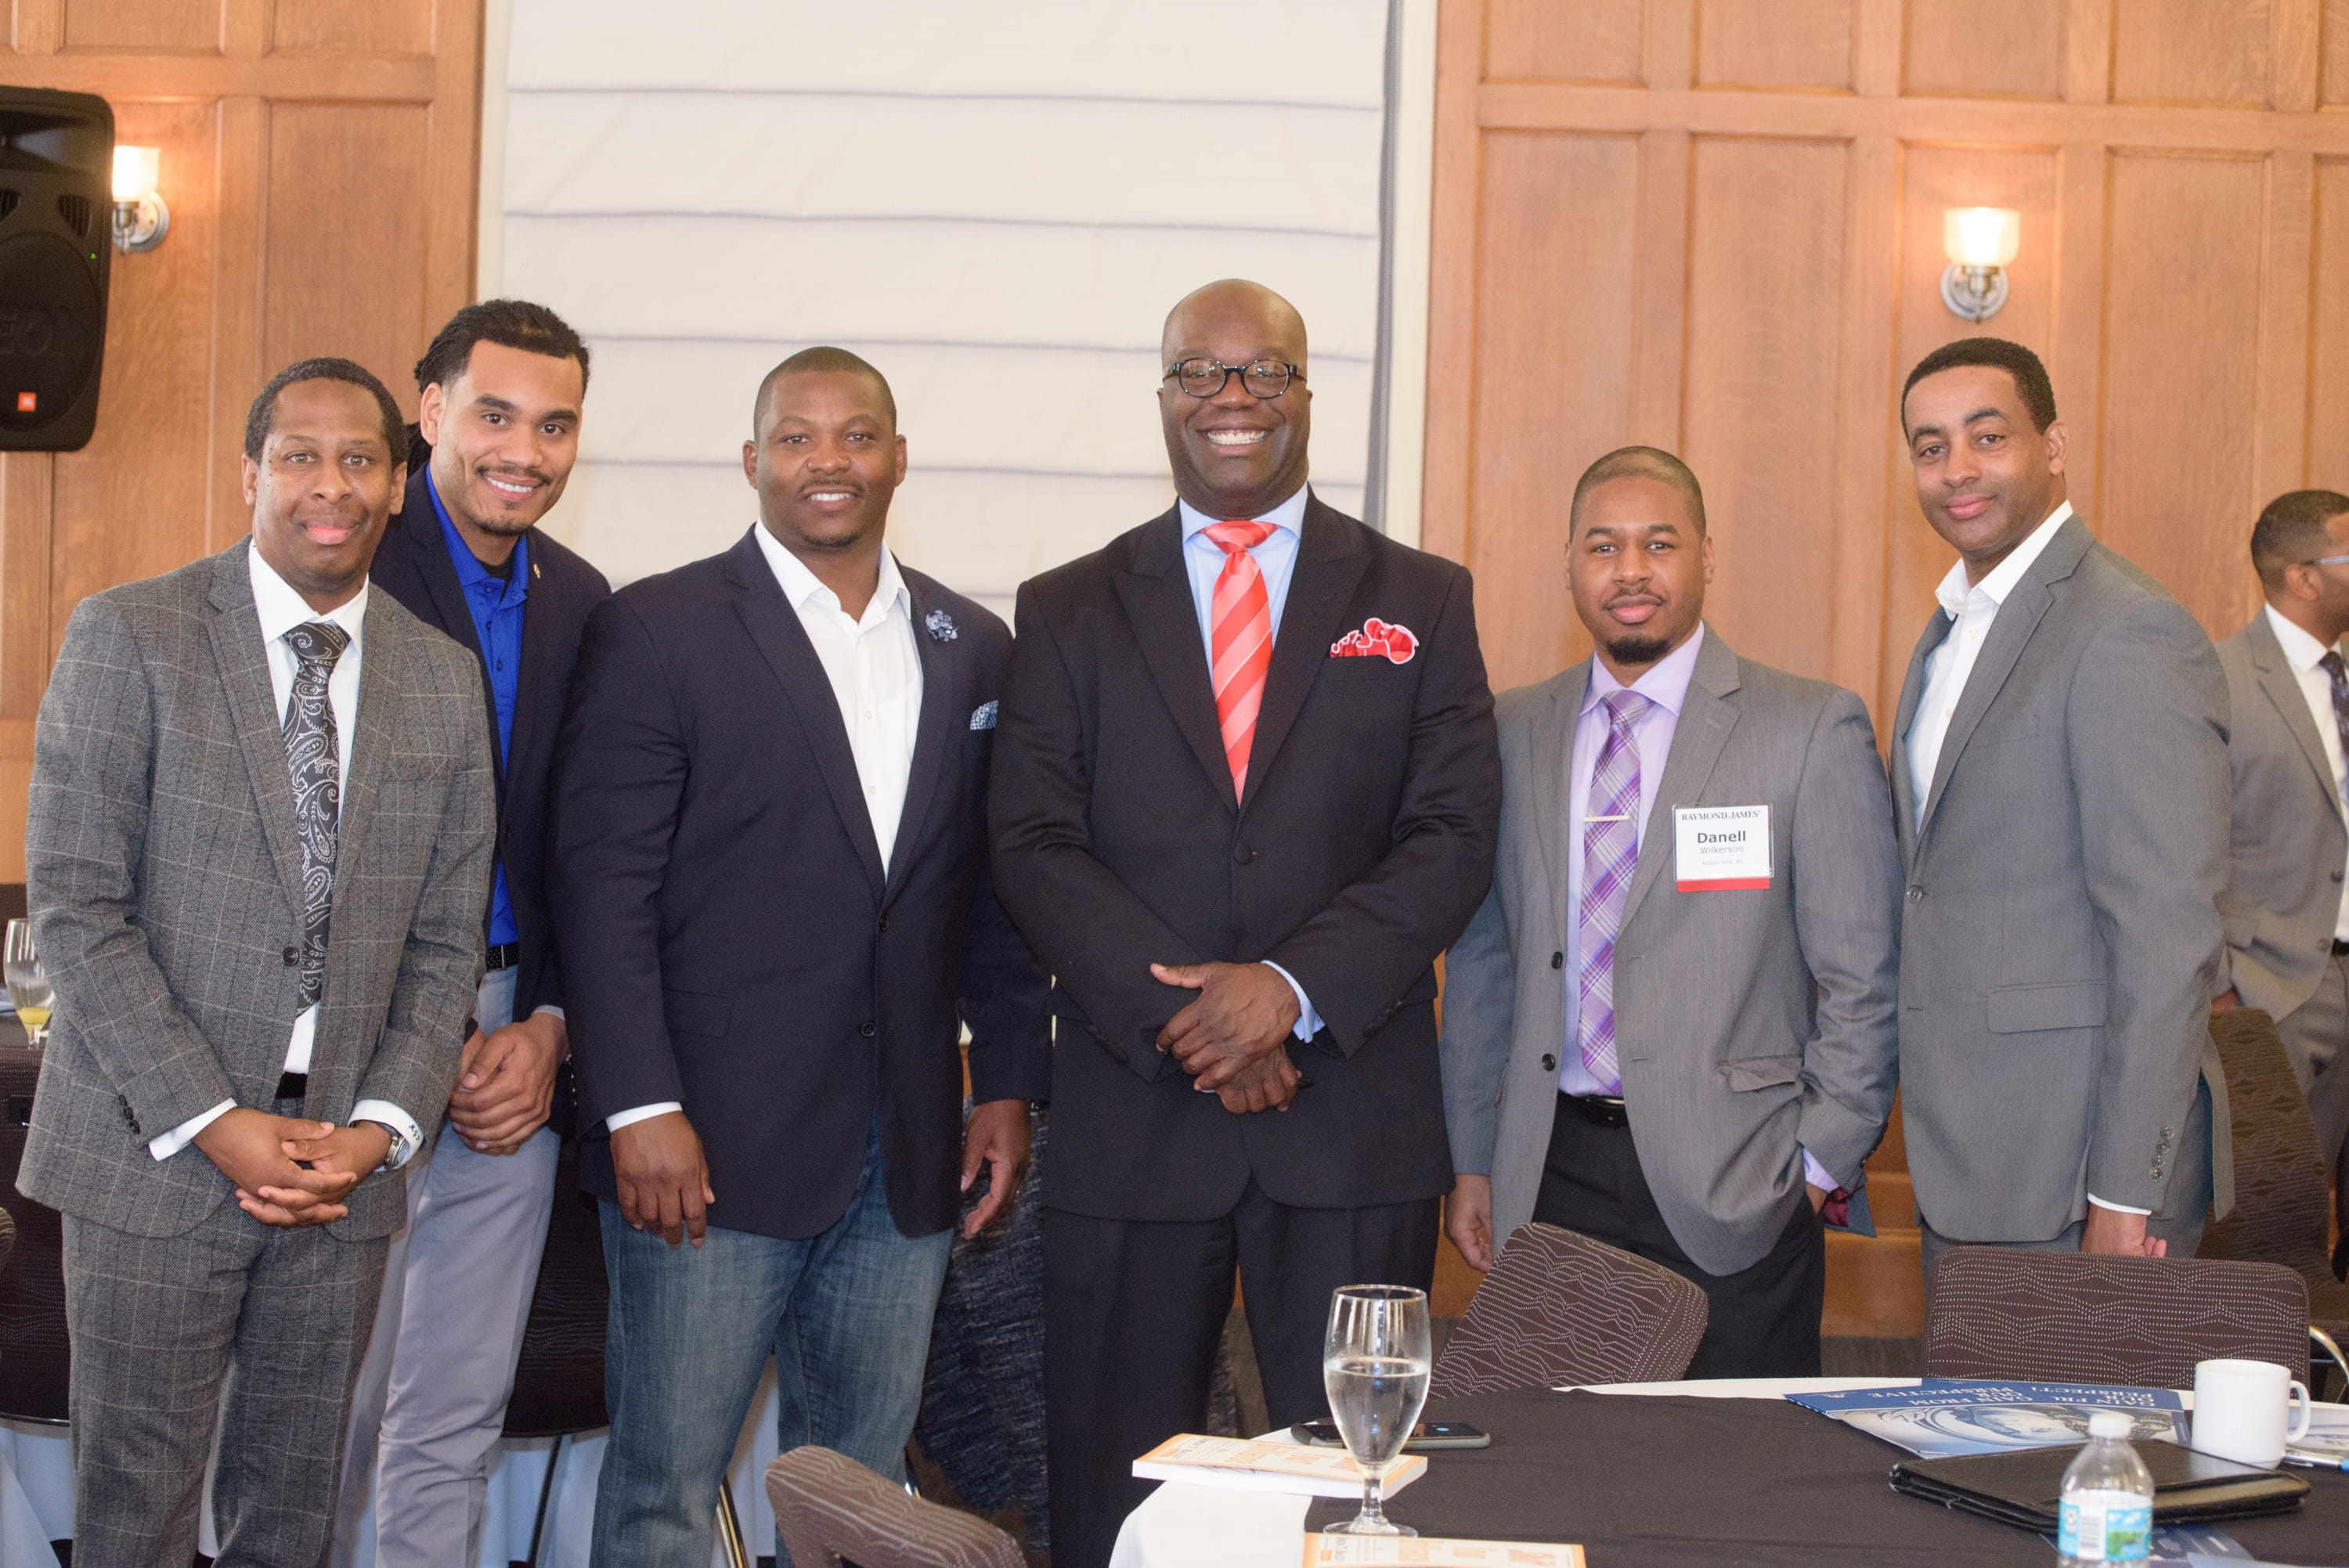 Simon T. Bailey (third from right) speaks to the men and women of BFAN (Black Financial Advisor Network) at Raymond James.